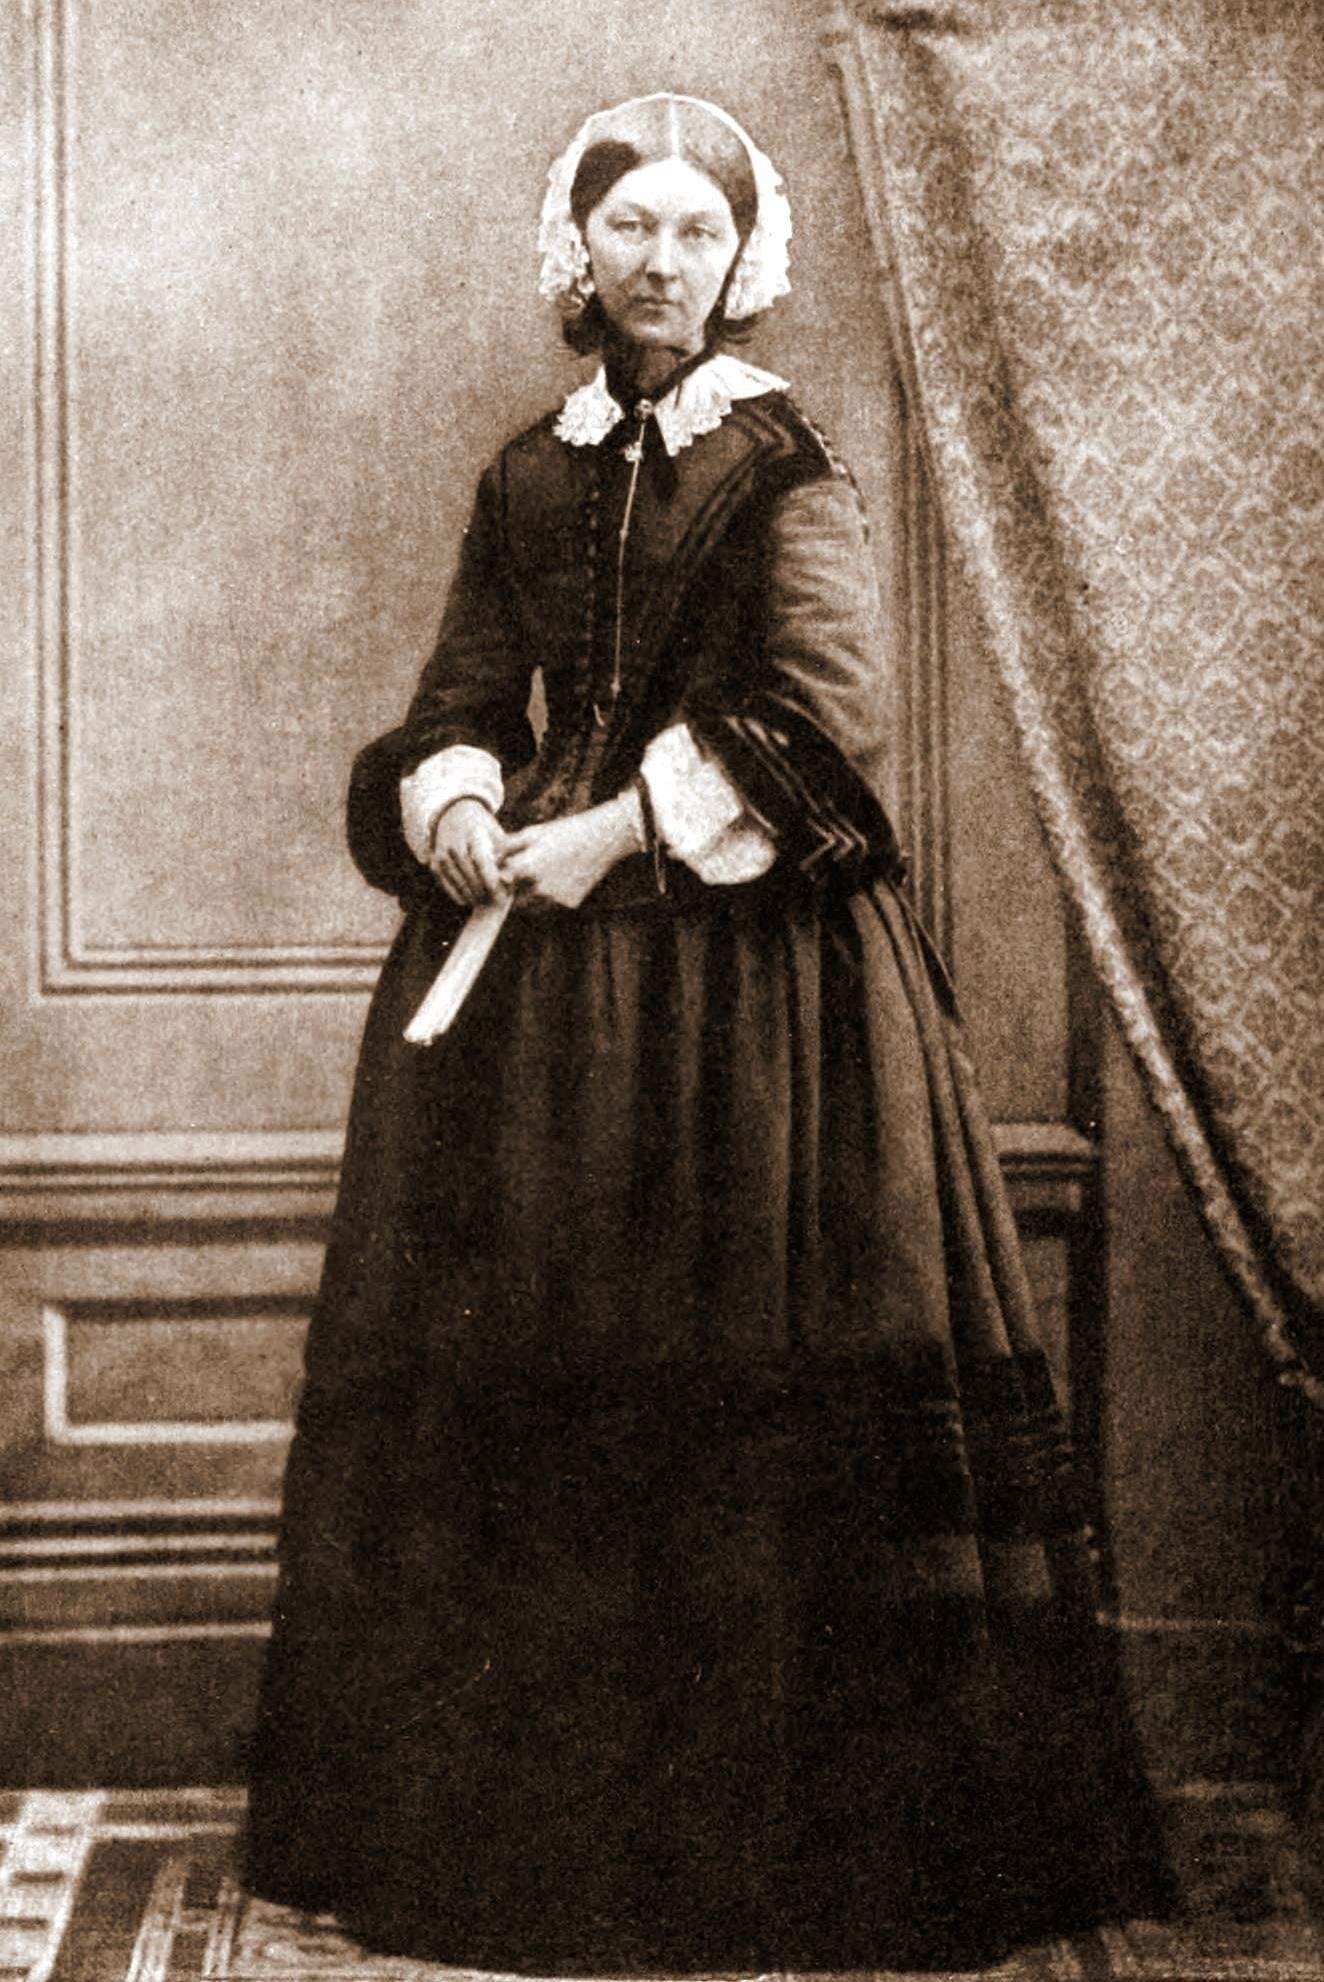 a biography of florence nightingale Biography florence nightingale joined her parents and older sister francis when she was born in florence, italy on may 12, 1820 her parents were on an extended honeymoon tour and the family.